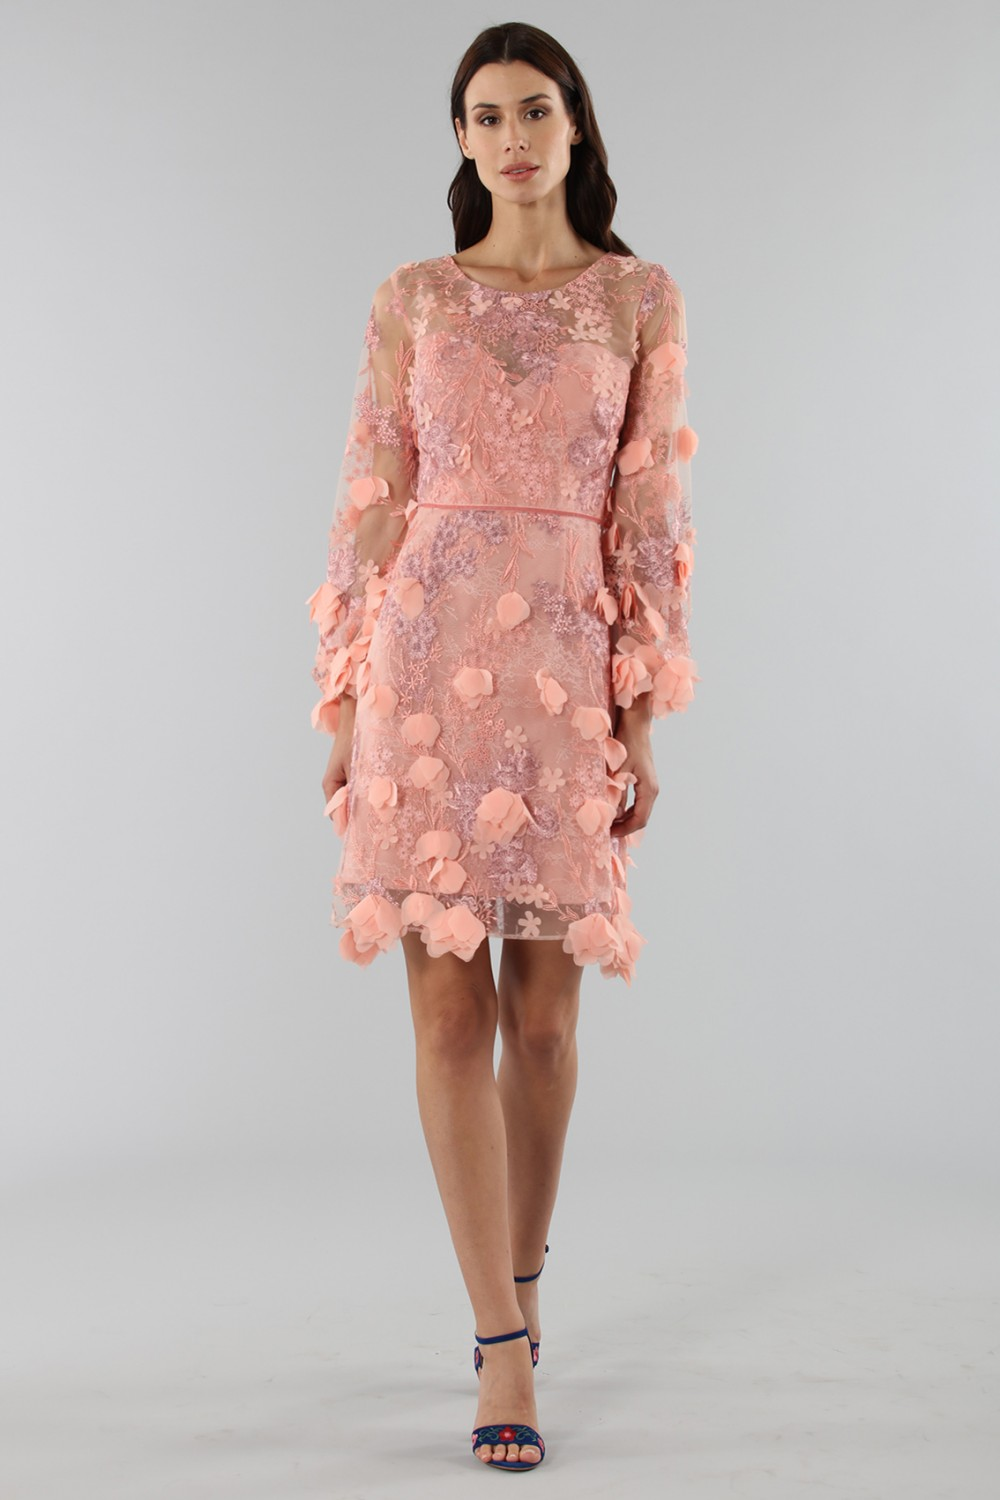 Cocktail dress with 3D floral embroidery